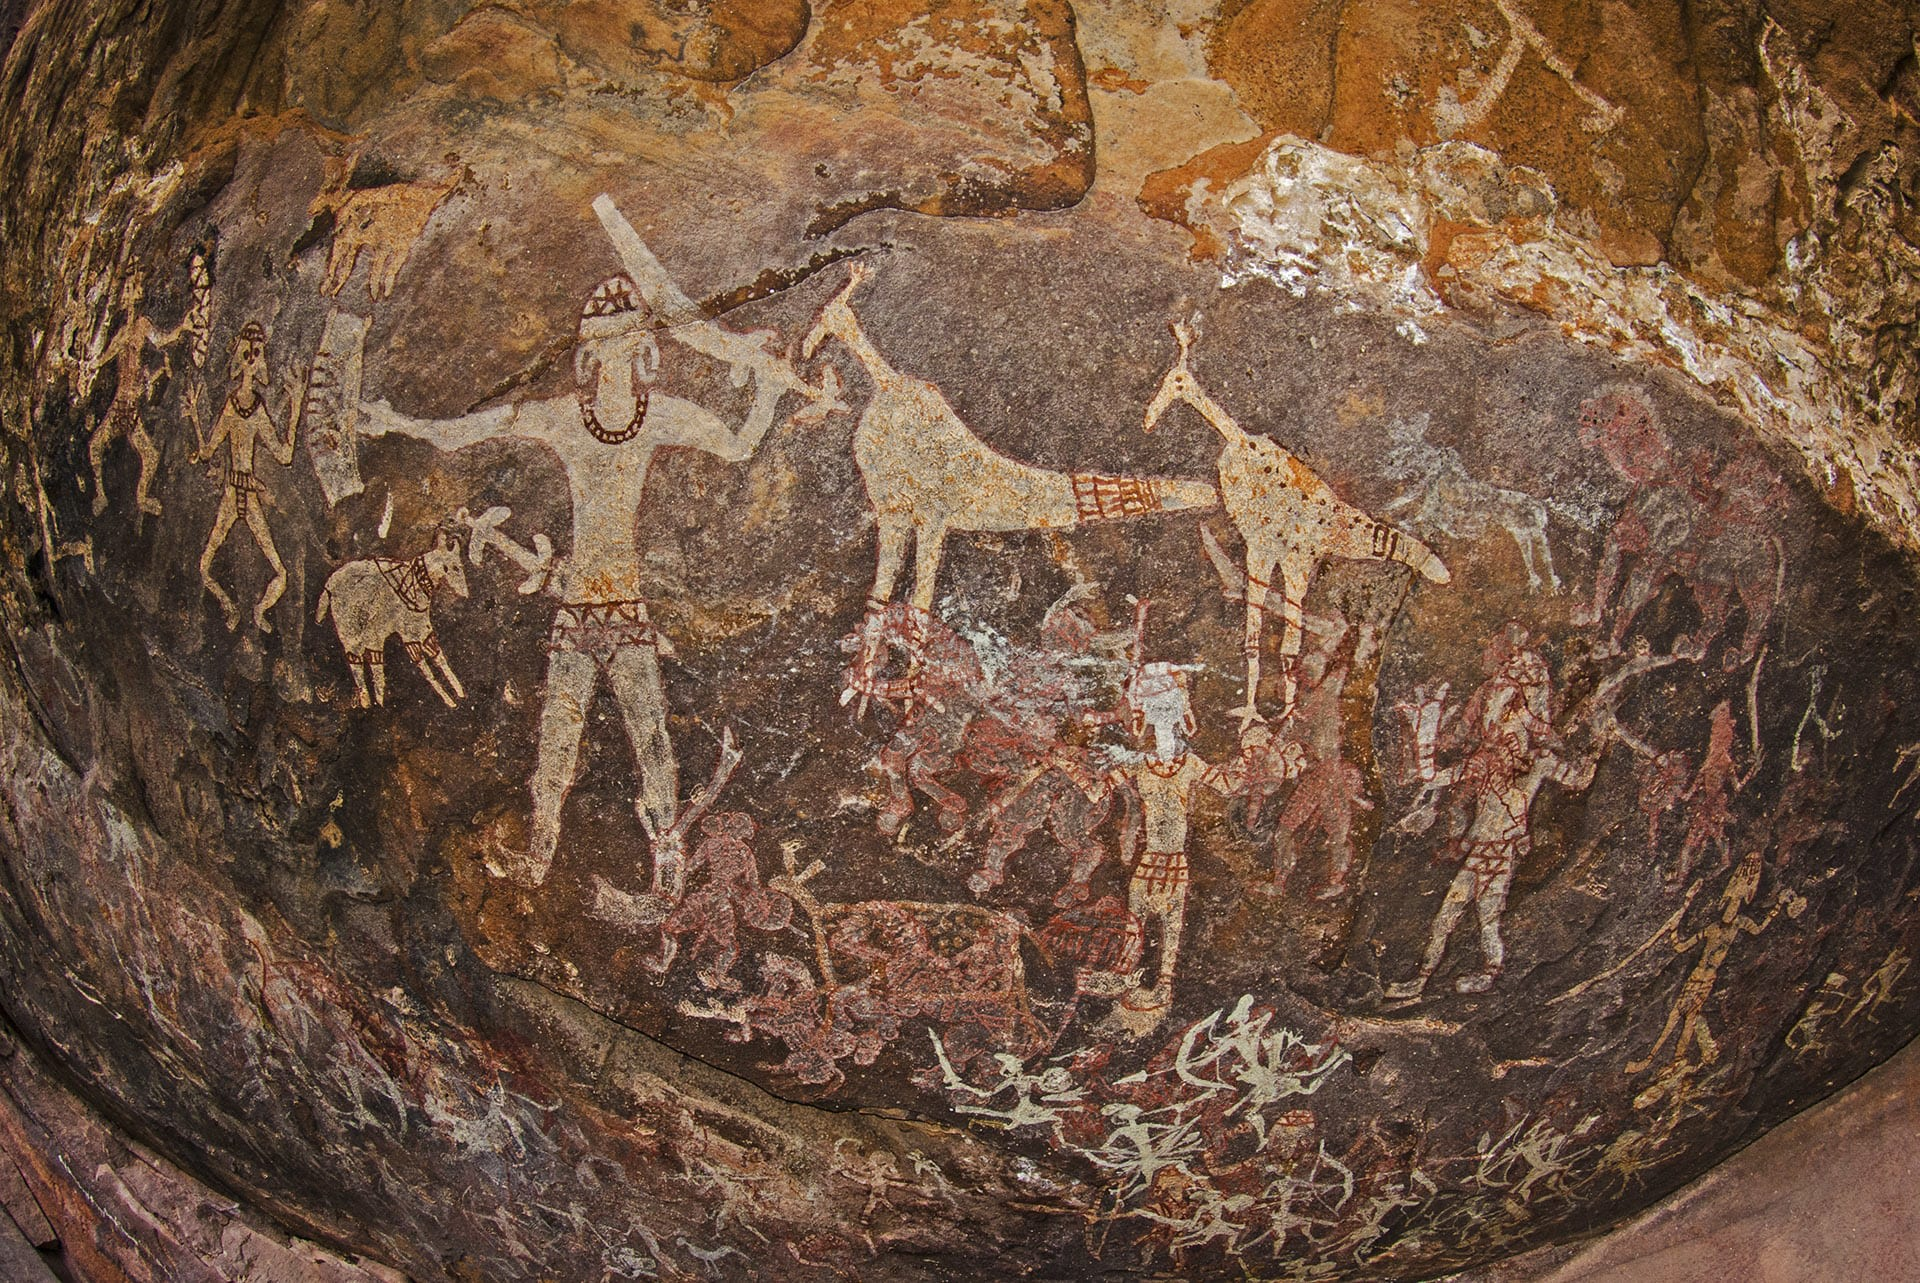 (Top) The Indian gaur is the largest and tallest species of wild cattle found in India. (Above) Prehistoric cave paintings that are at least 10,000 years old, are visible in some of the rock shelters of the Satpura mountain range. The paintings depict animals and birds, and scenes of hunting, dancing, and social life among other things. Photos: Dhritiman Mukherjee